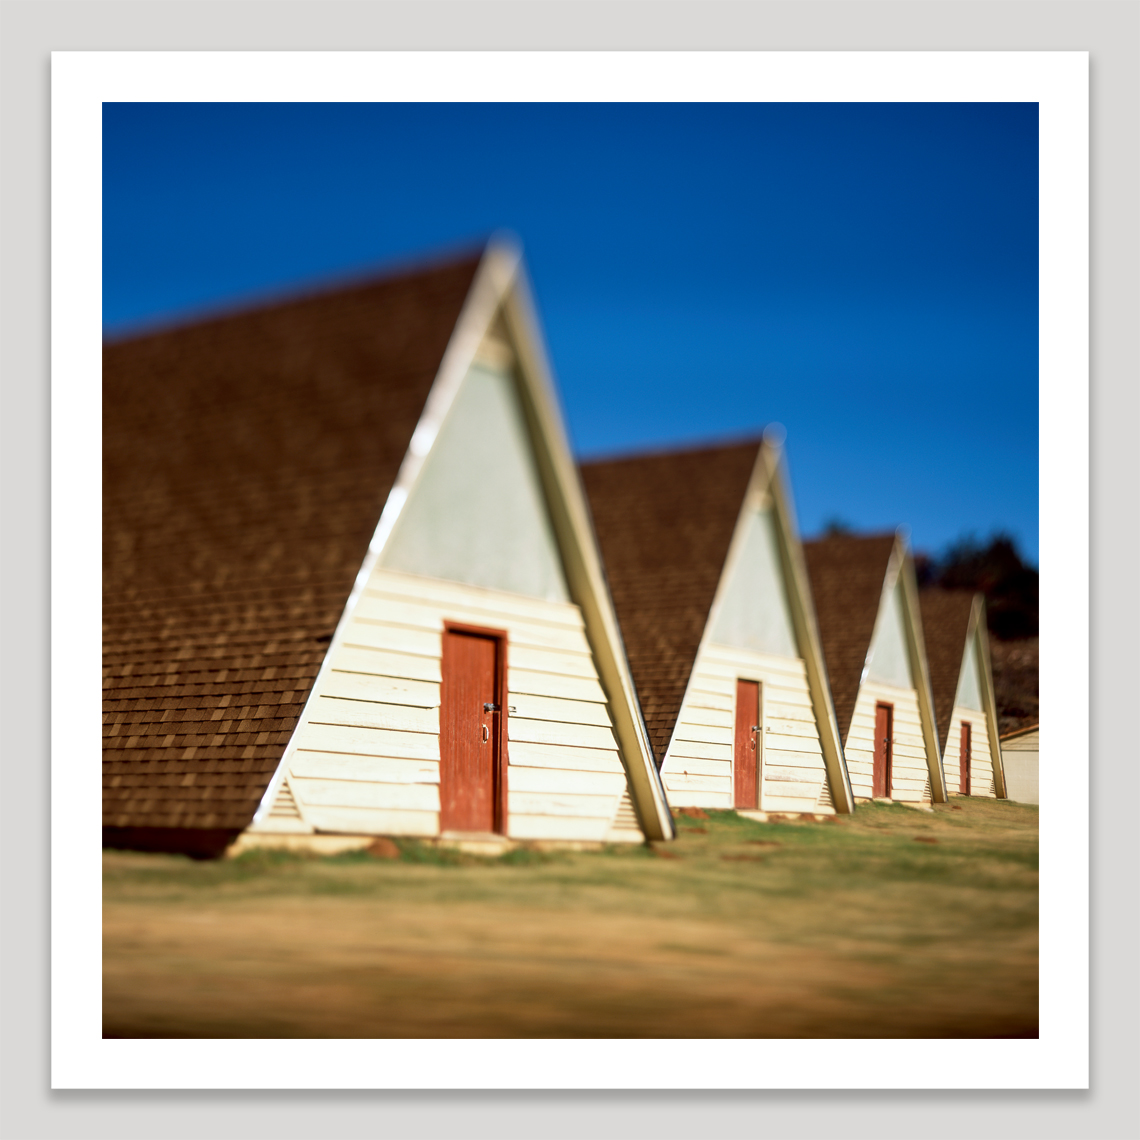 A-frame cottages